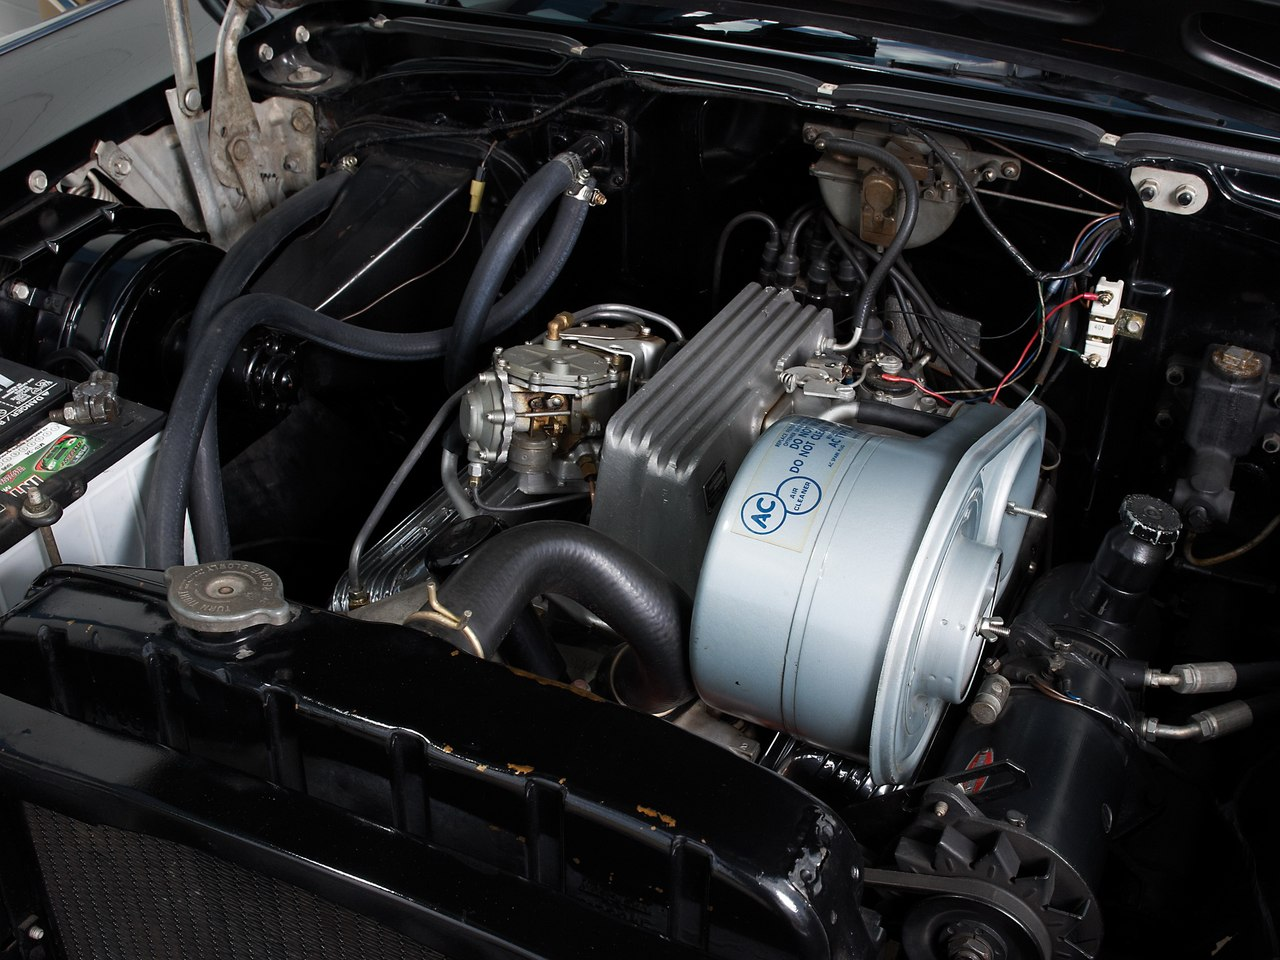 Chevrolet Bel Air Fuel Injection Sport Coupe (2454-1037D) '1957